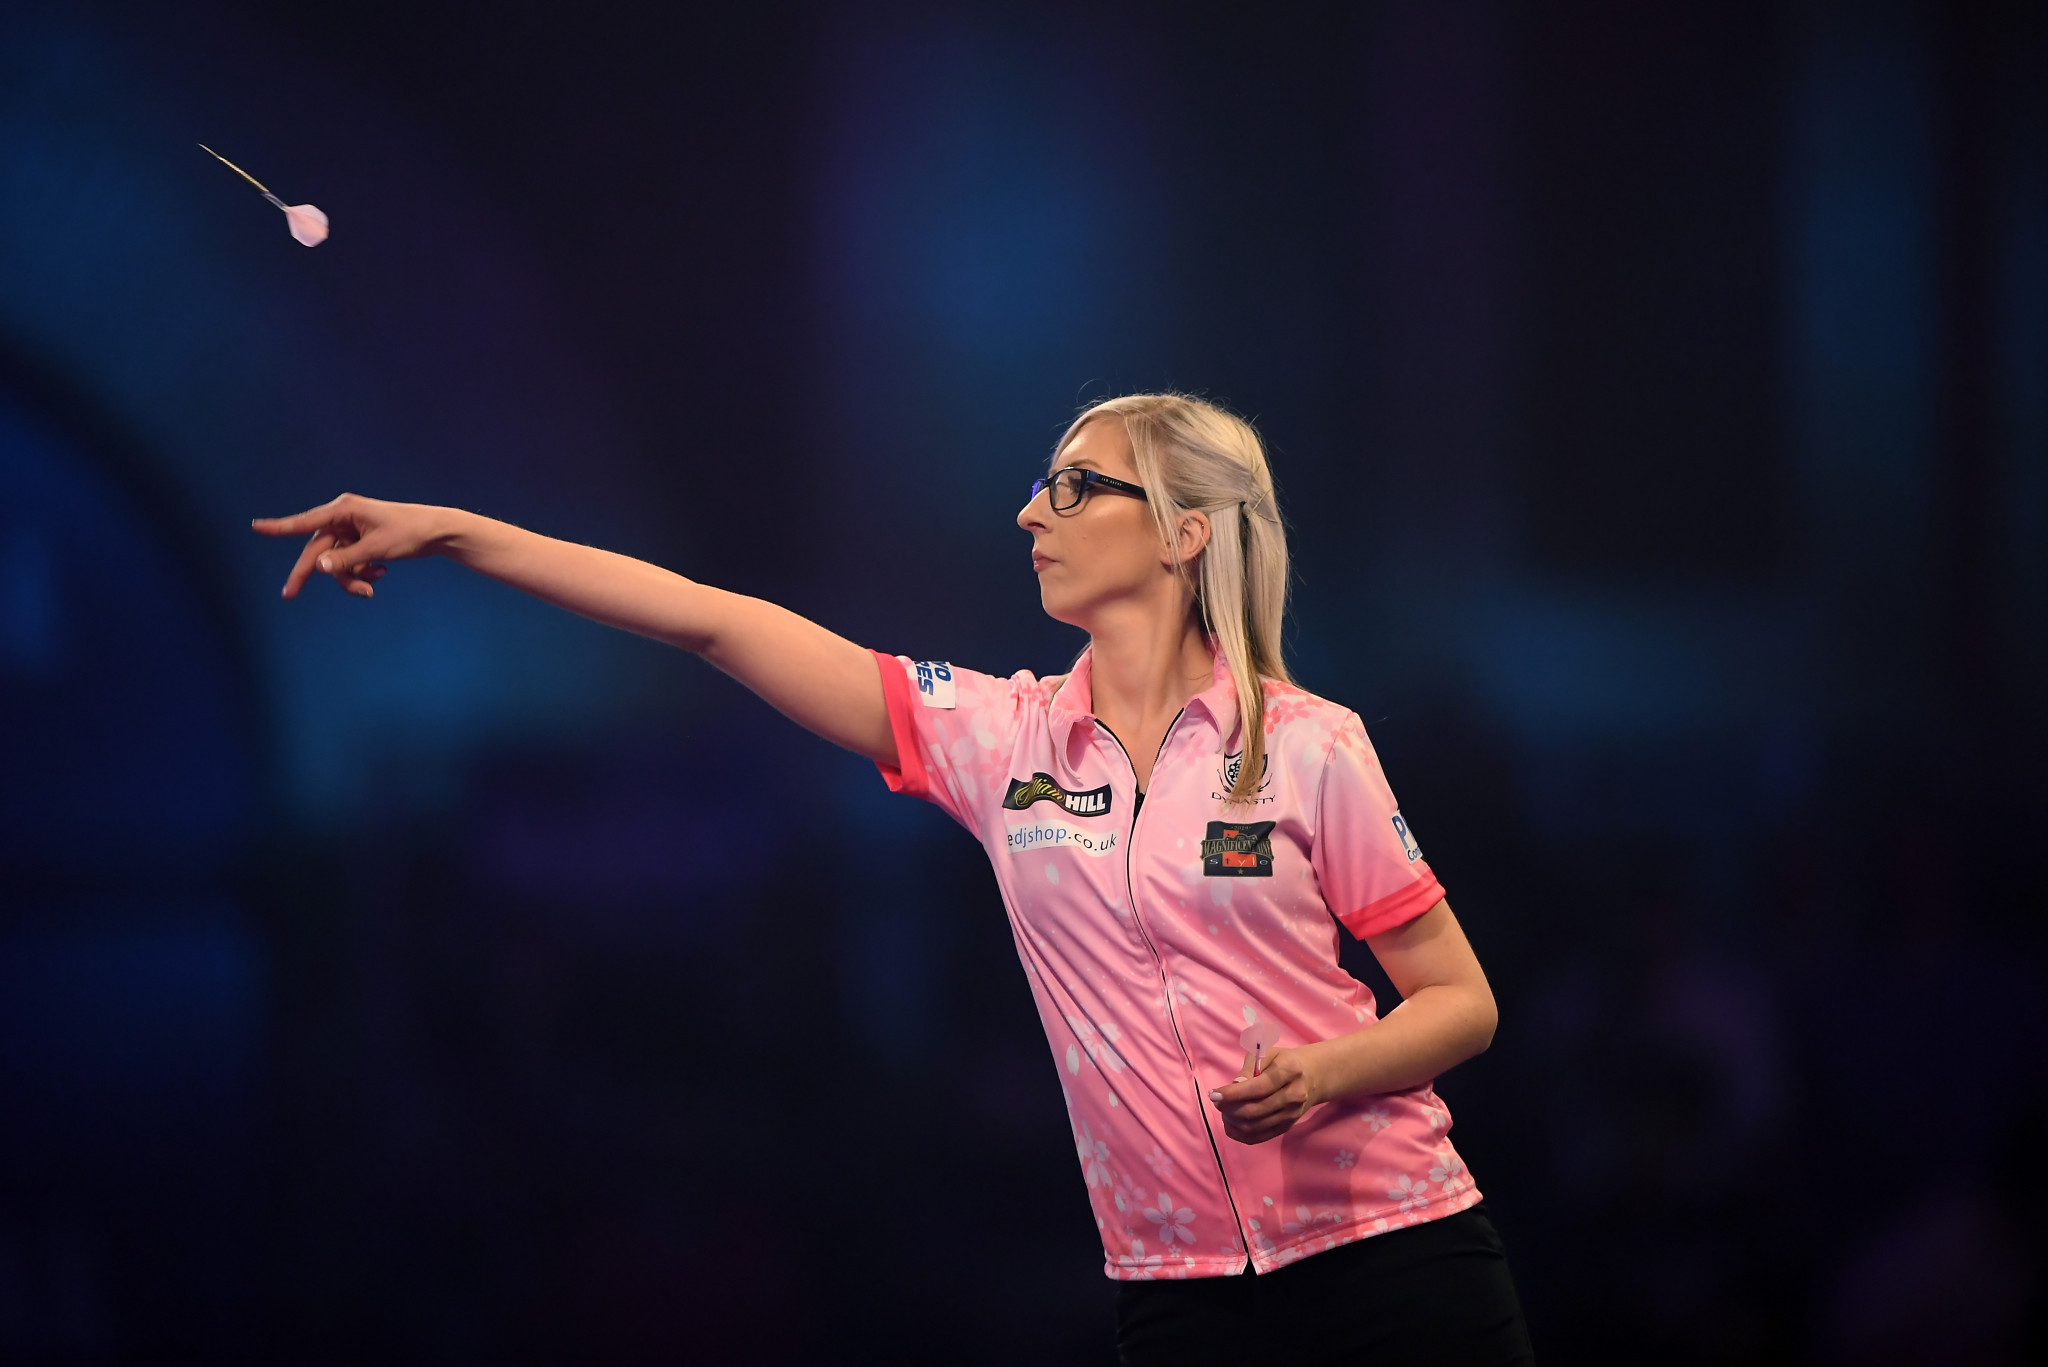 Fallon Sherrock became the first woman to win a match at the World Darts Championships ©Getty Images